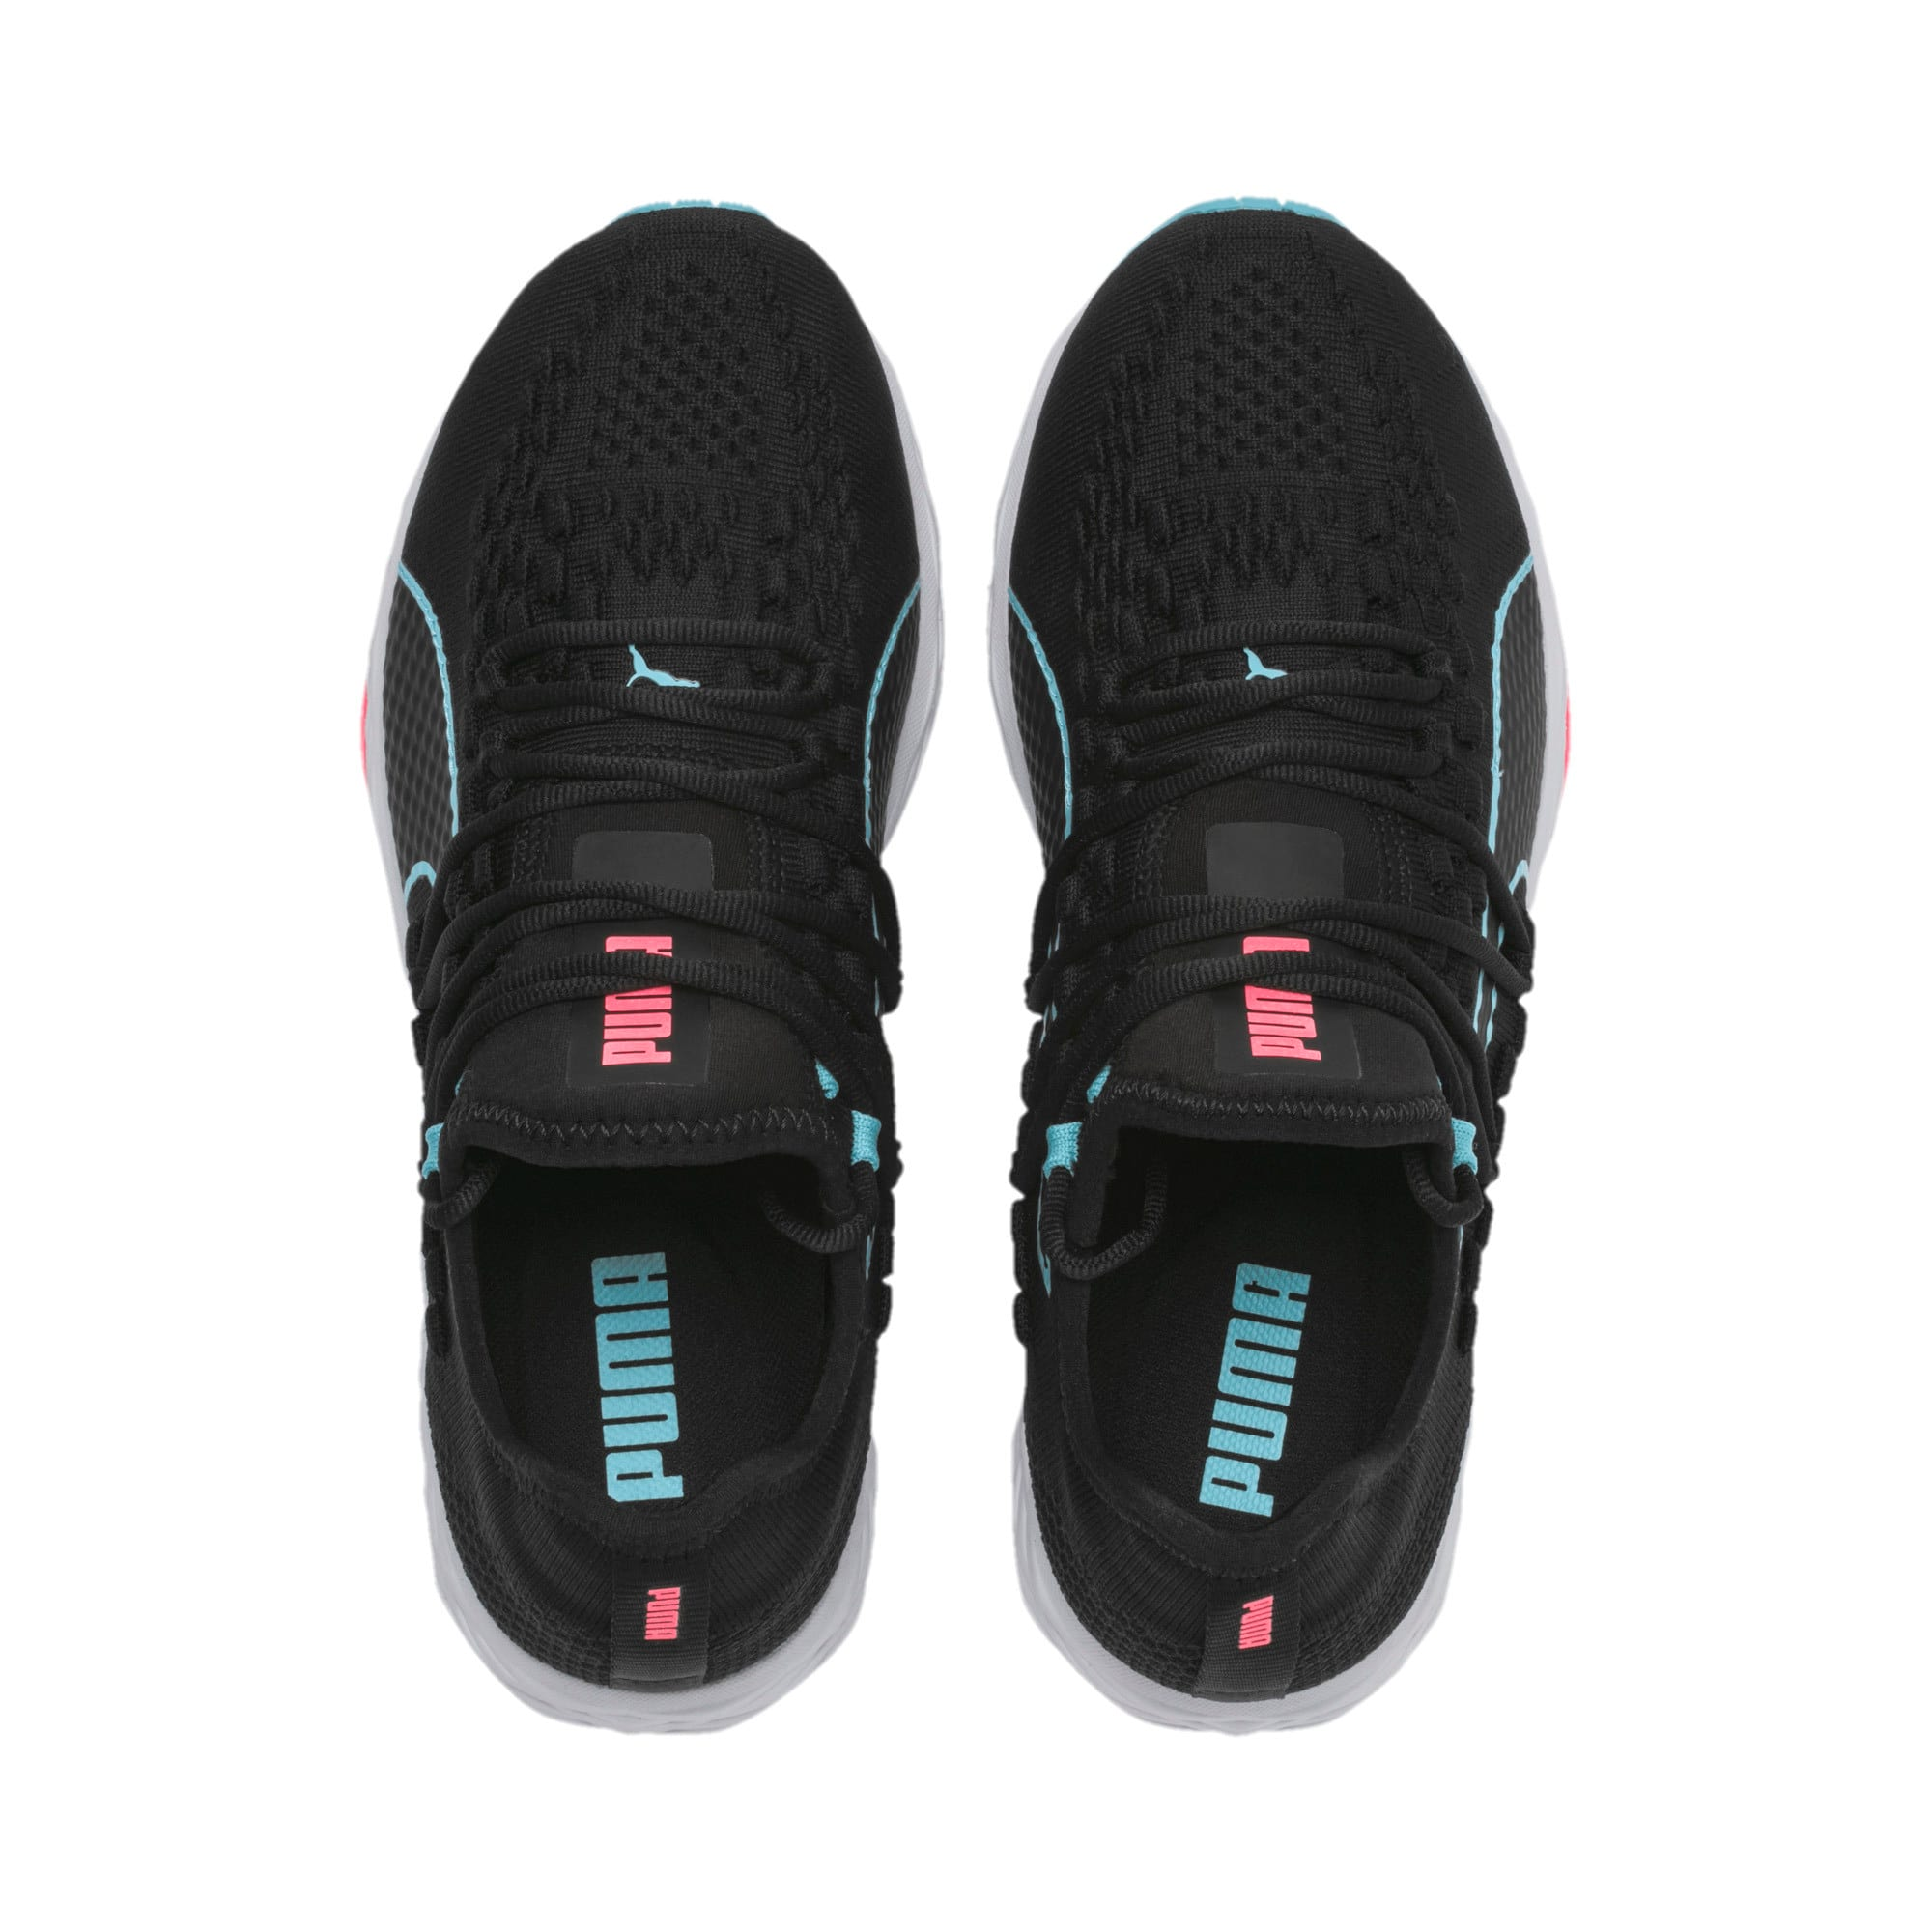 Thumbnail 7 of SPEED RACER Women's Running Shoes, Black-Milky Blue-Pink Alert, medium